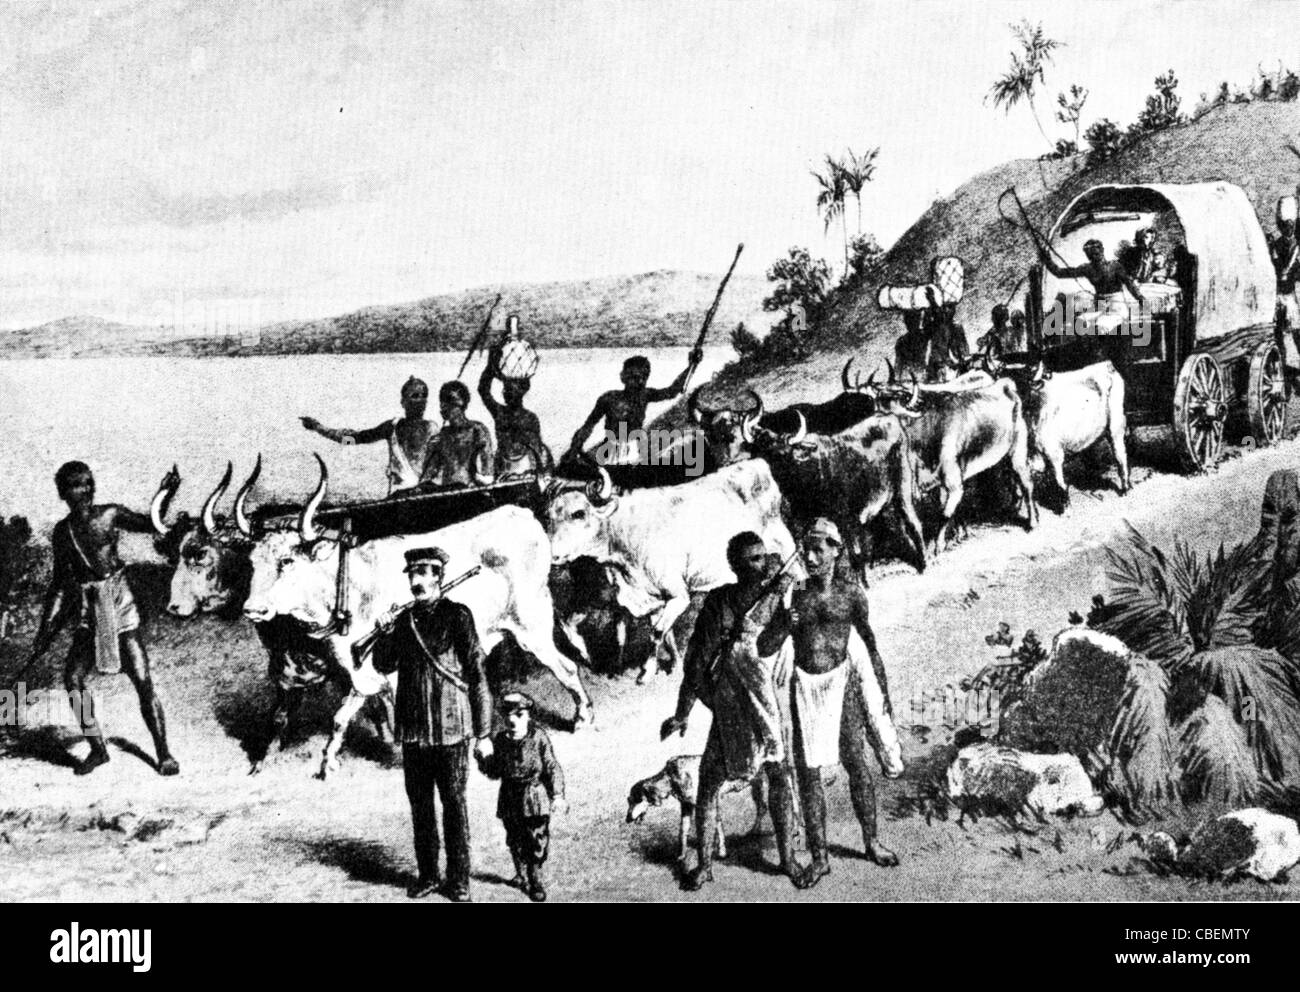 DAVID LIVINGSTONE accompanied by Oswell, discovers Lake Ngami in what is now Botswana, on 1 August 1849 - Stock Image